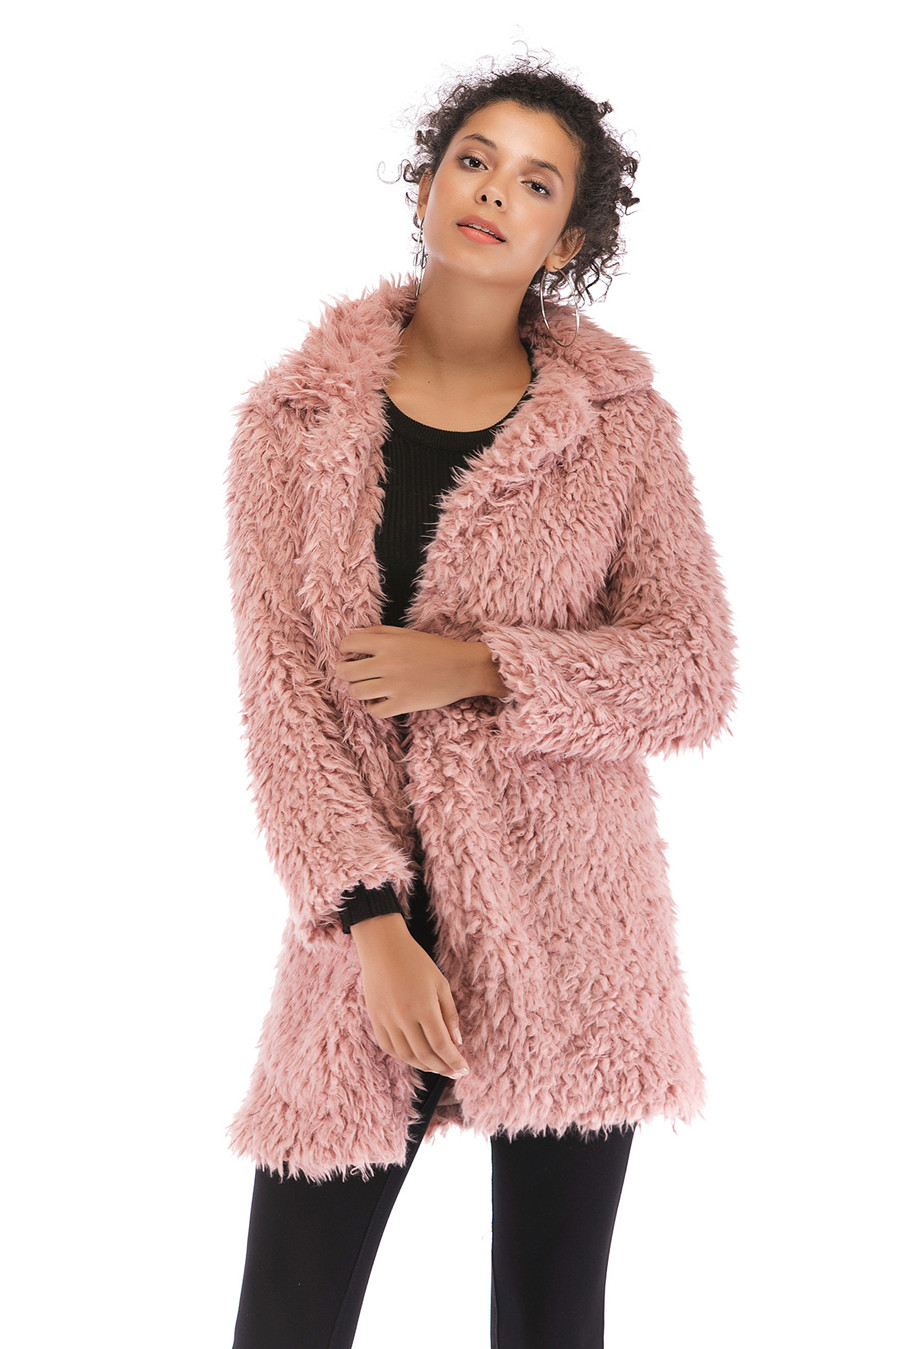 Gladiolus 2018 Women Autumn Winter Coat Turn-Down Collar Long Sleeve Covered Button Long Warm Shaggy Faux Fur Coat Women Jackets (35)